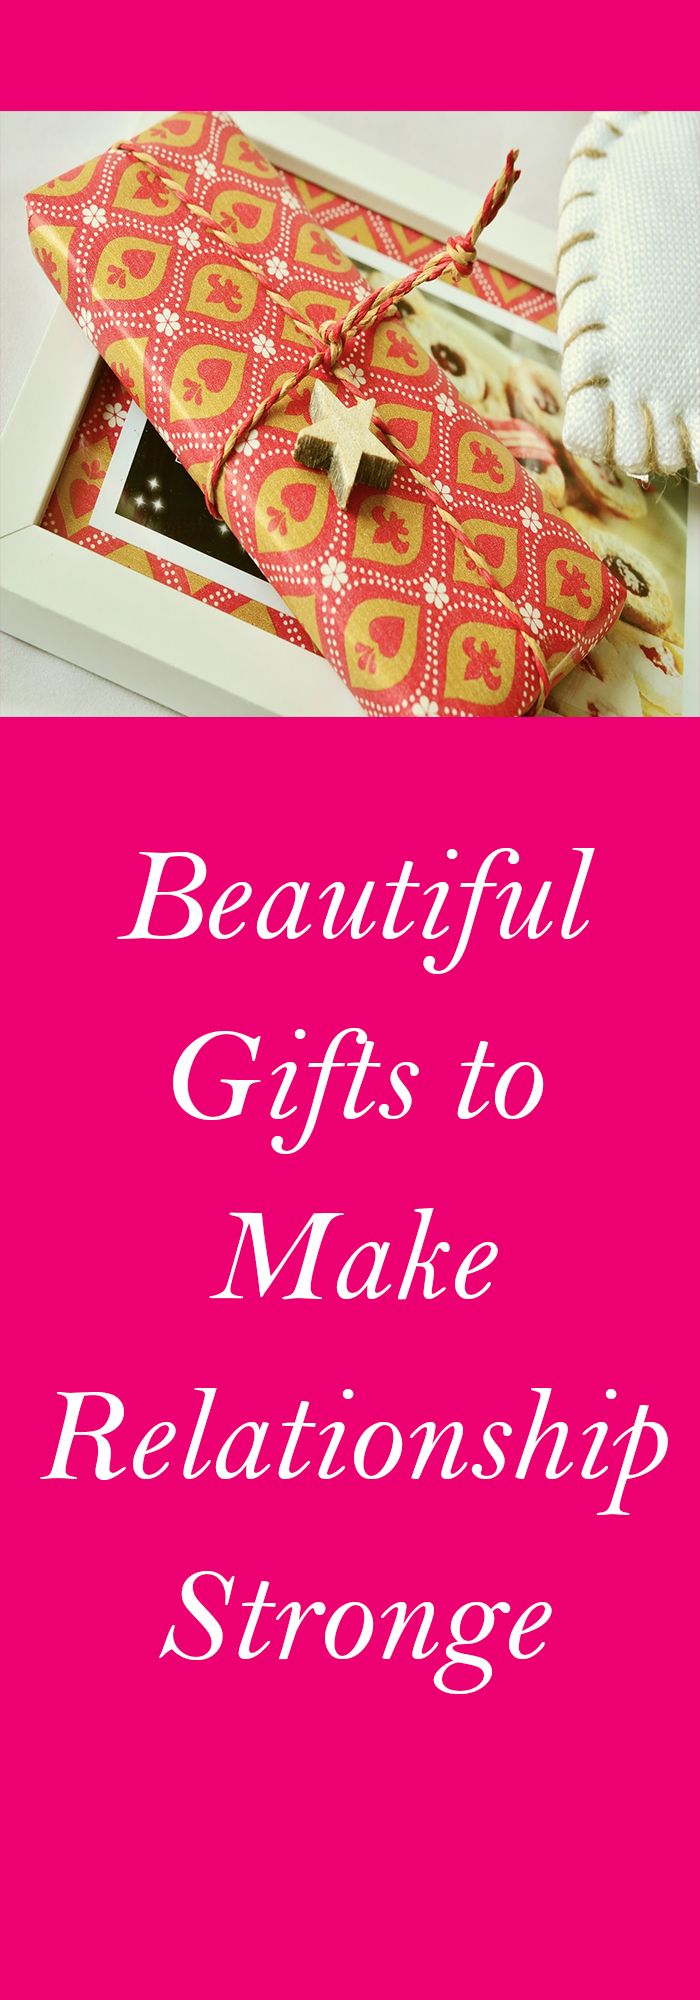 Best 25 romantic ideas for her ideas only on pinterest for Sentimental gift ideas